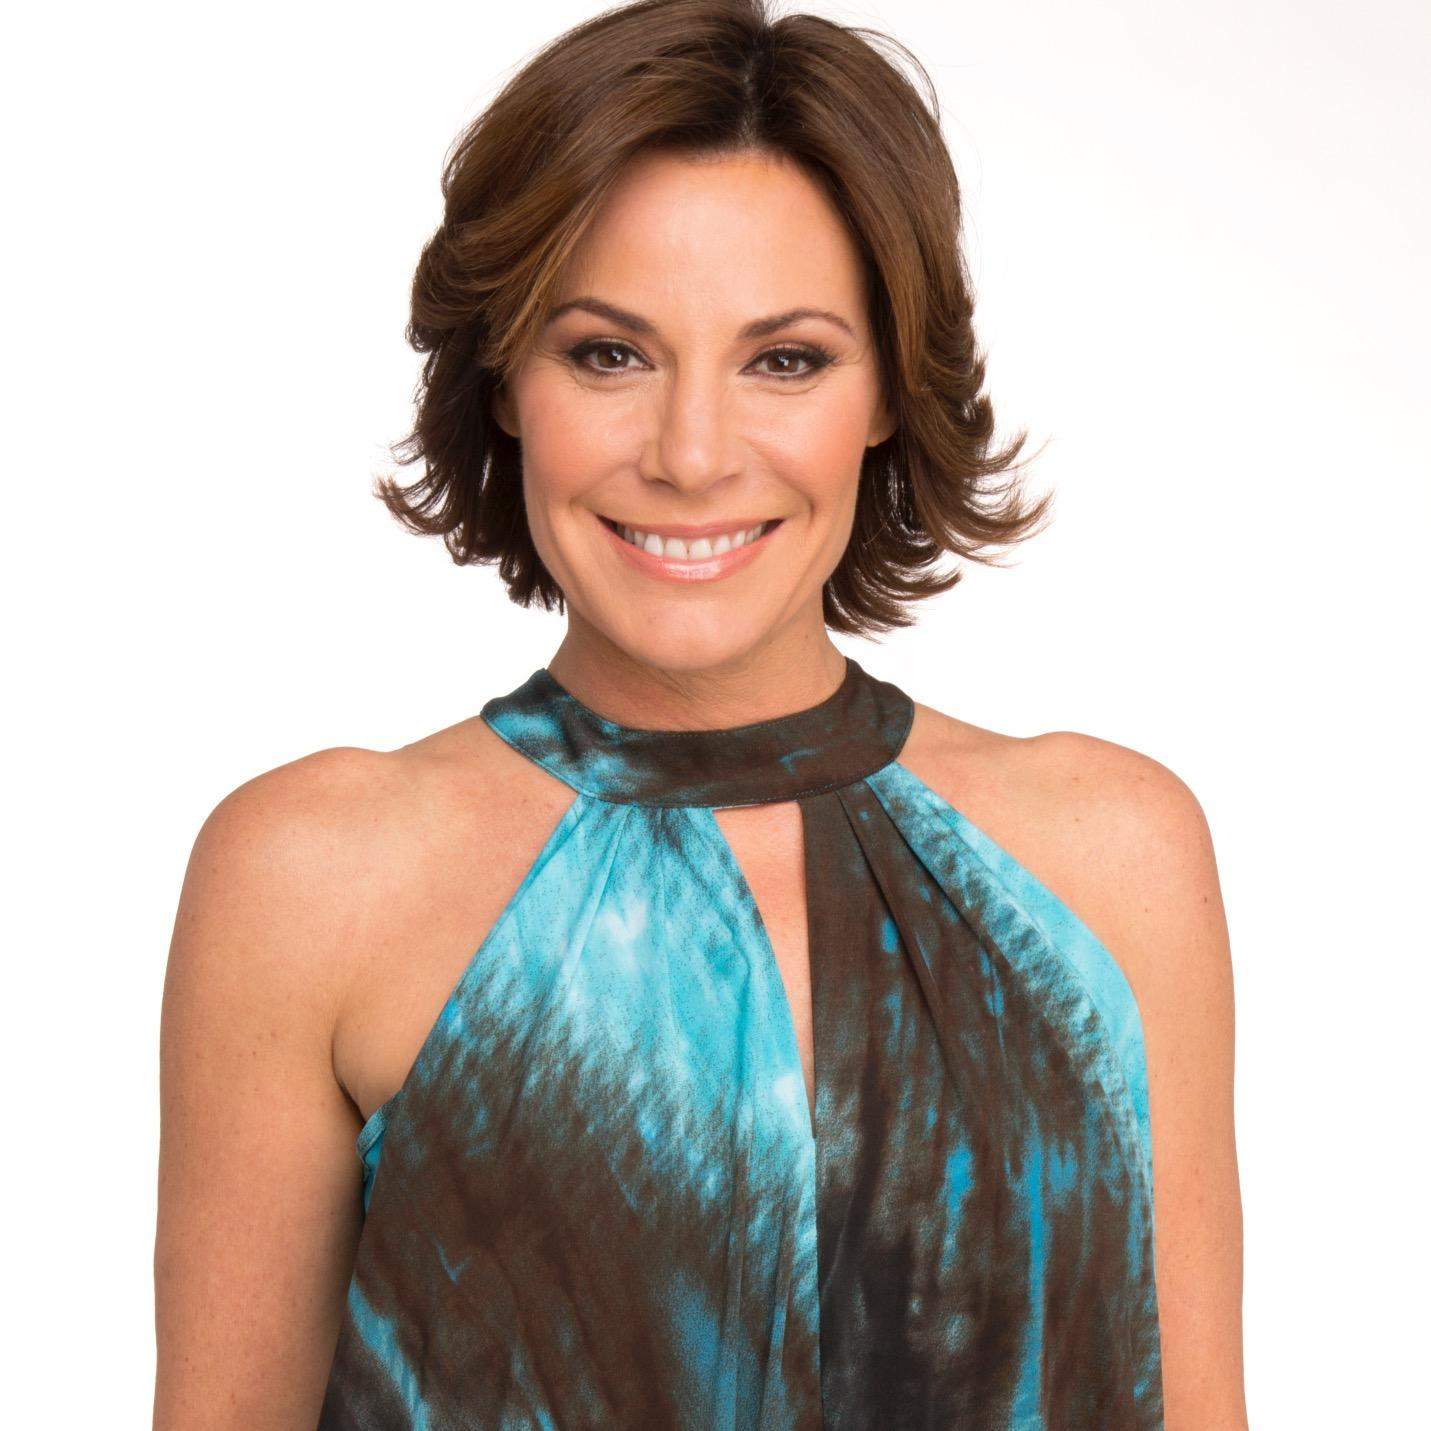 Luann de Lesseps naked (35 photos) Gallery, Instagram, butt